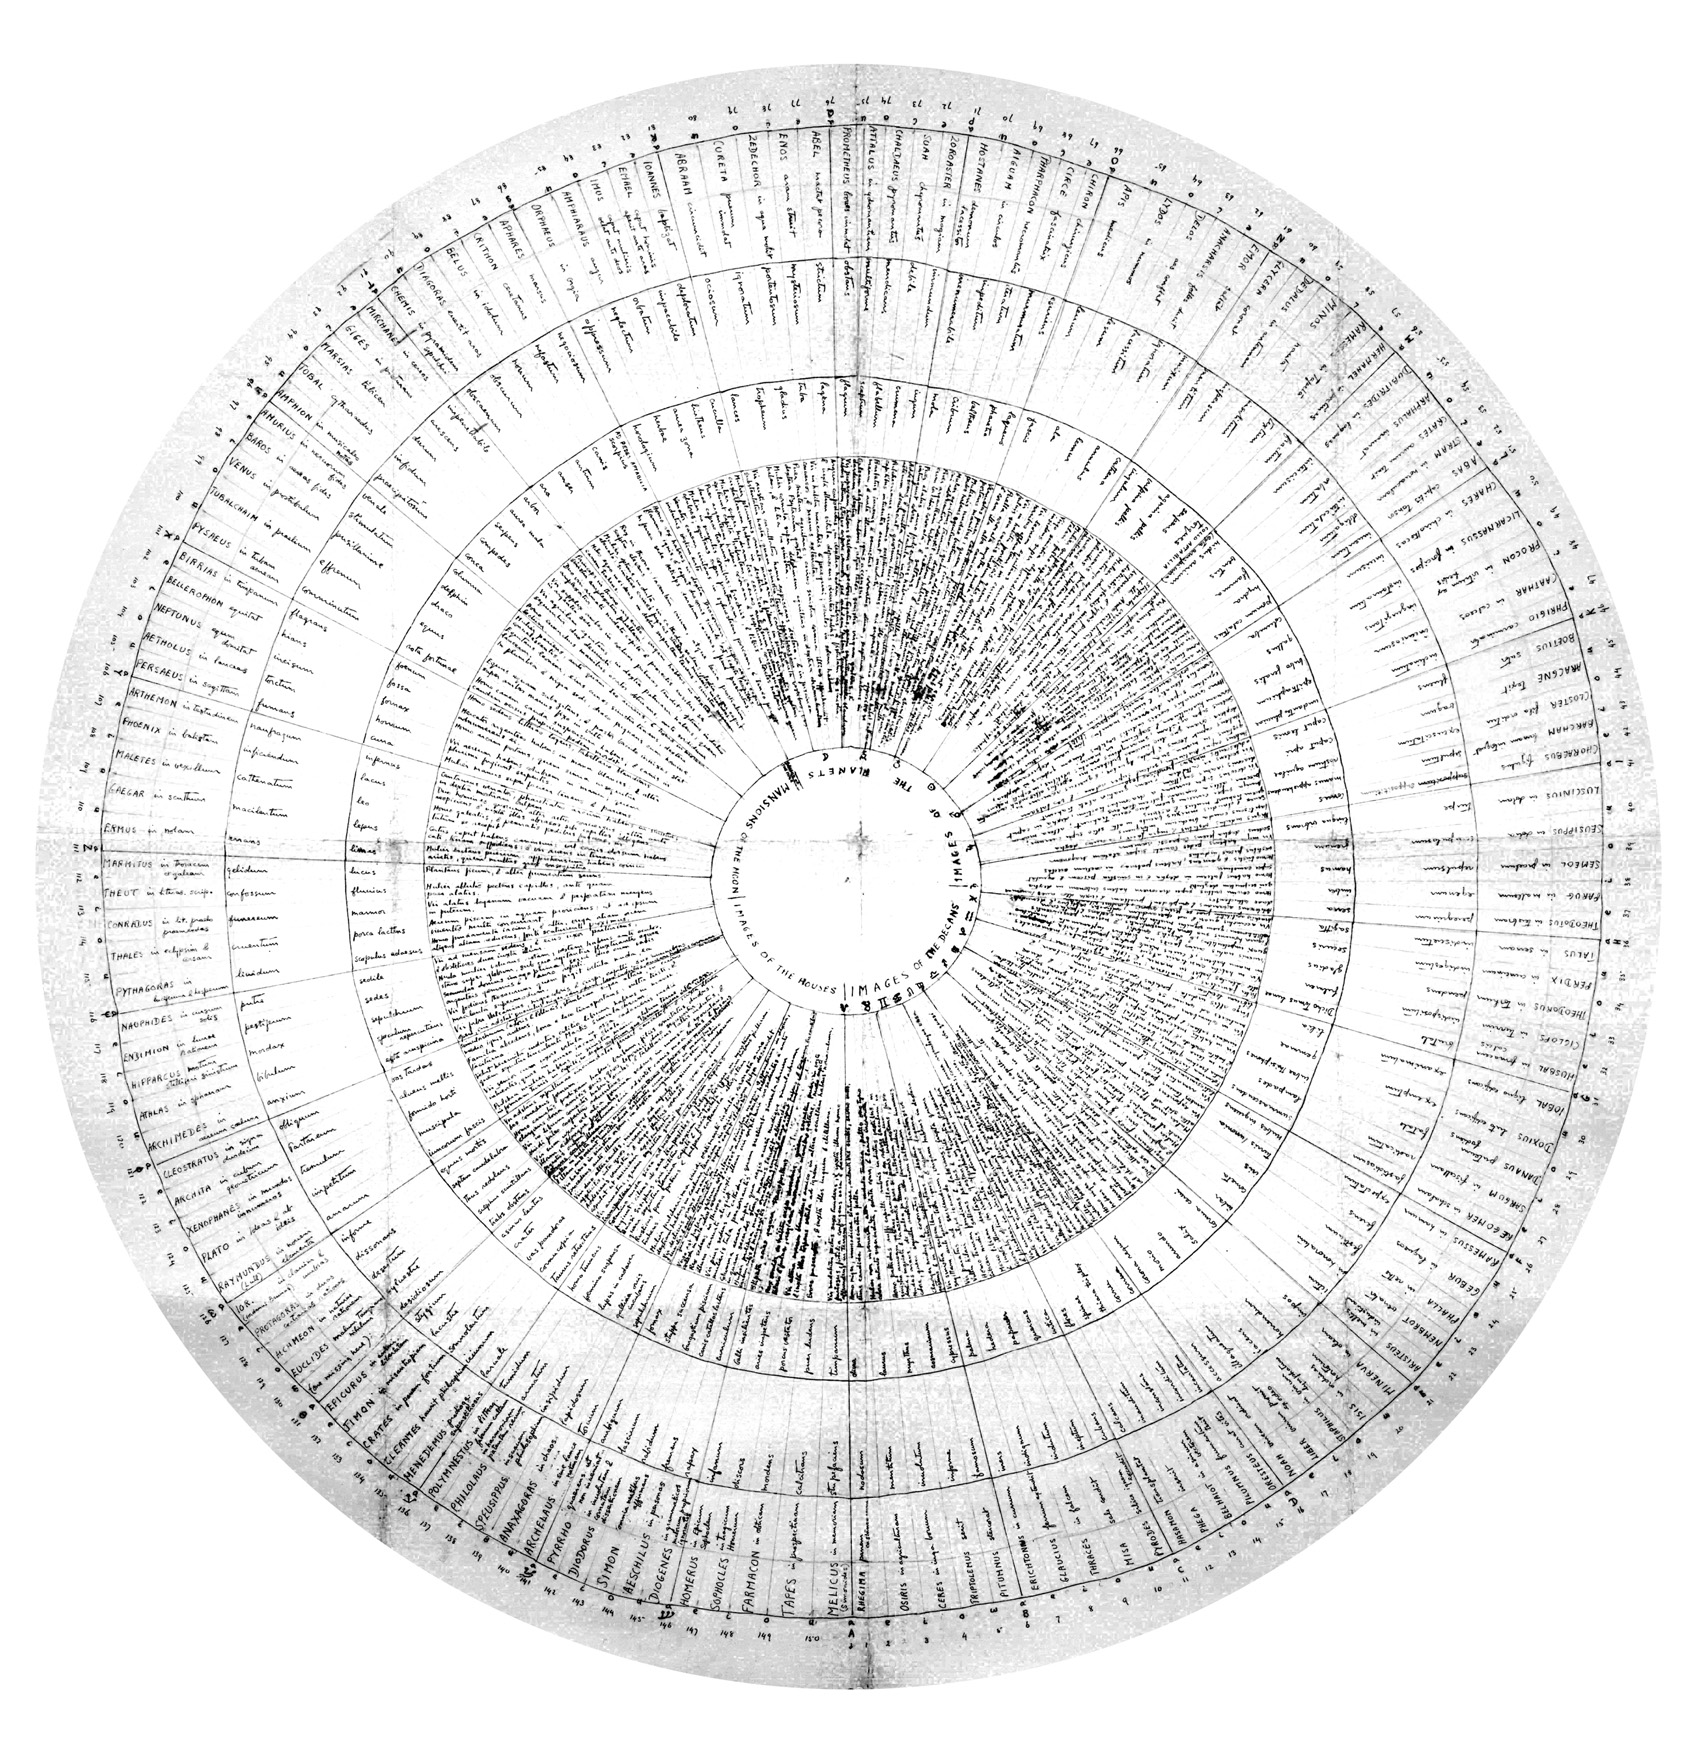 https://ianjwpollard.files.wordpress.com/2010/07/yates-f-bruno-memory-wheel-reconstruction.jpg